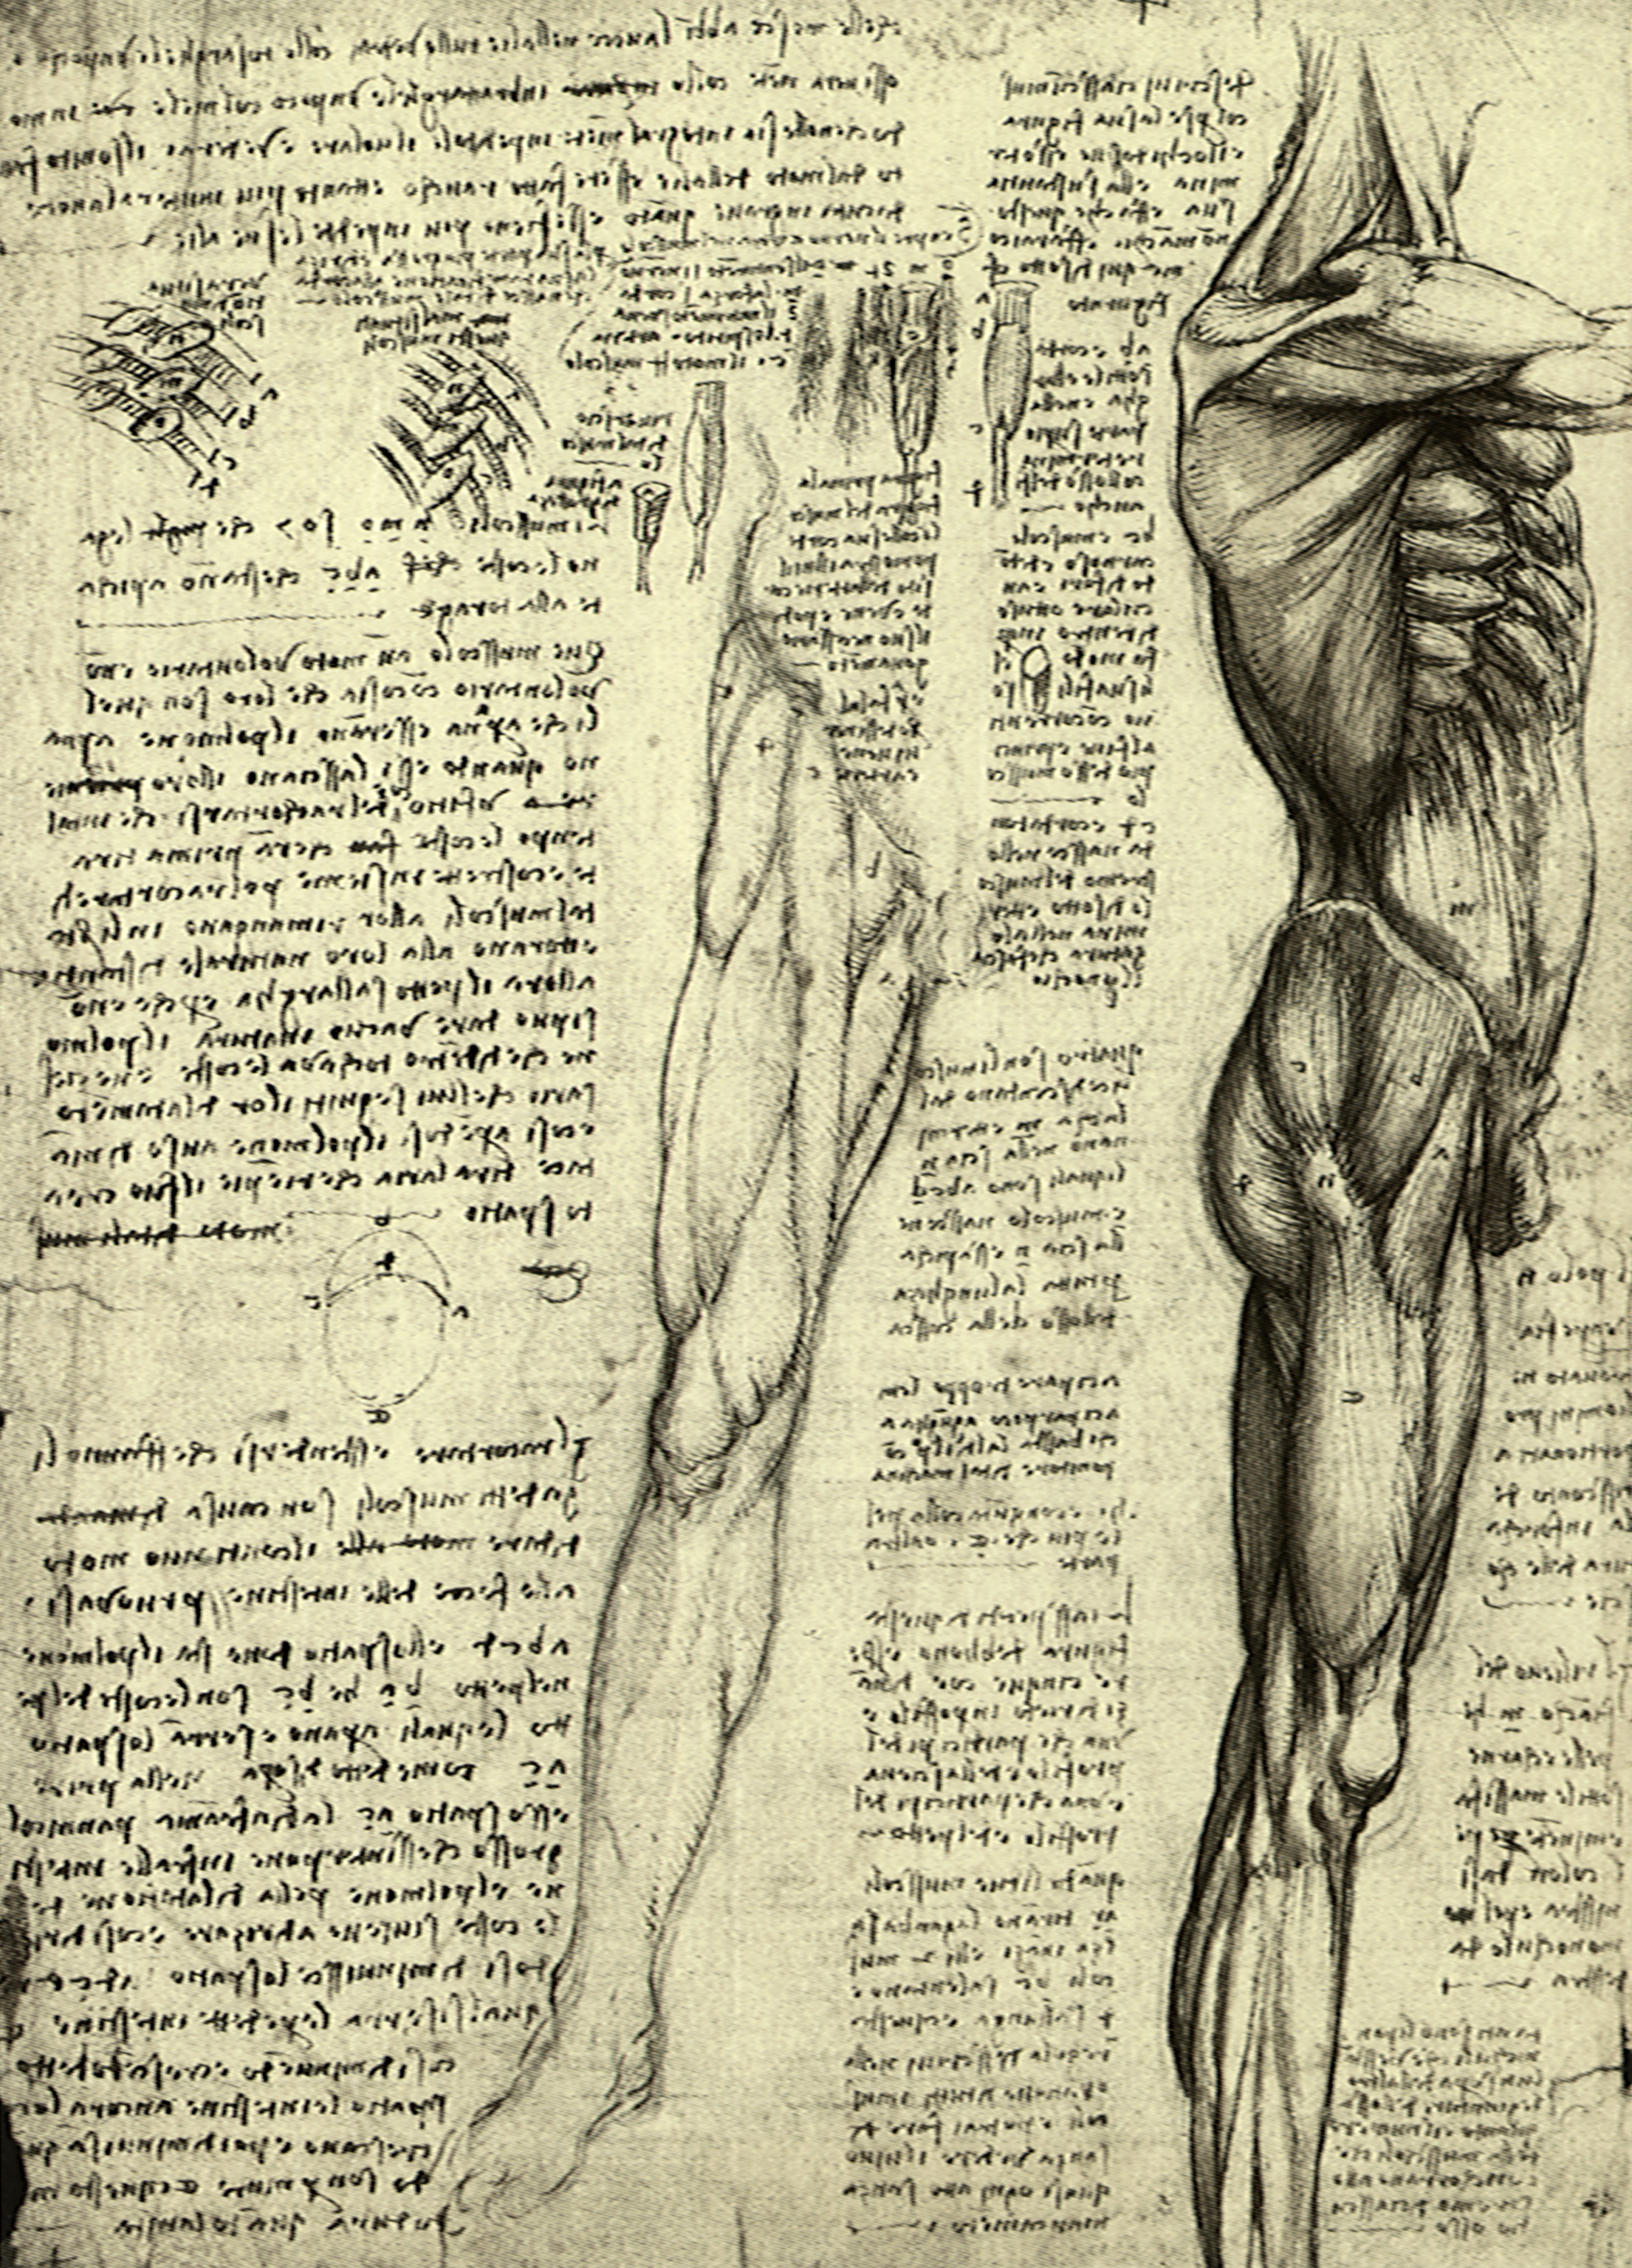 Free Vintage Anatomy Ephemera Archives - The Graffical Muse